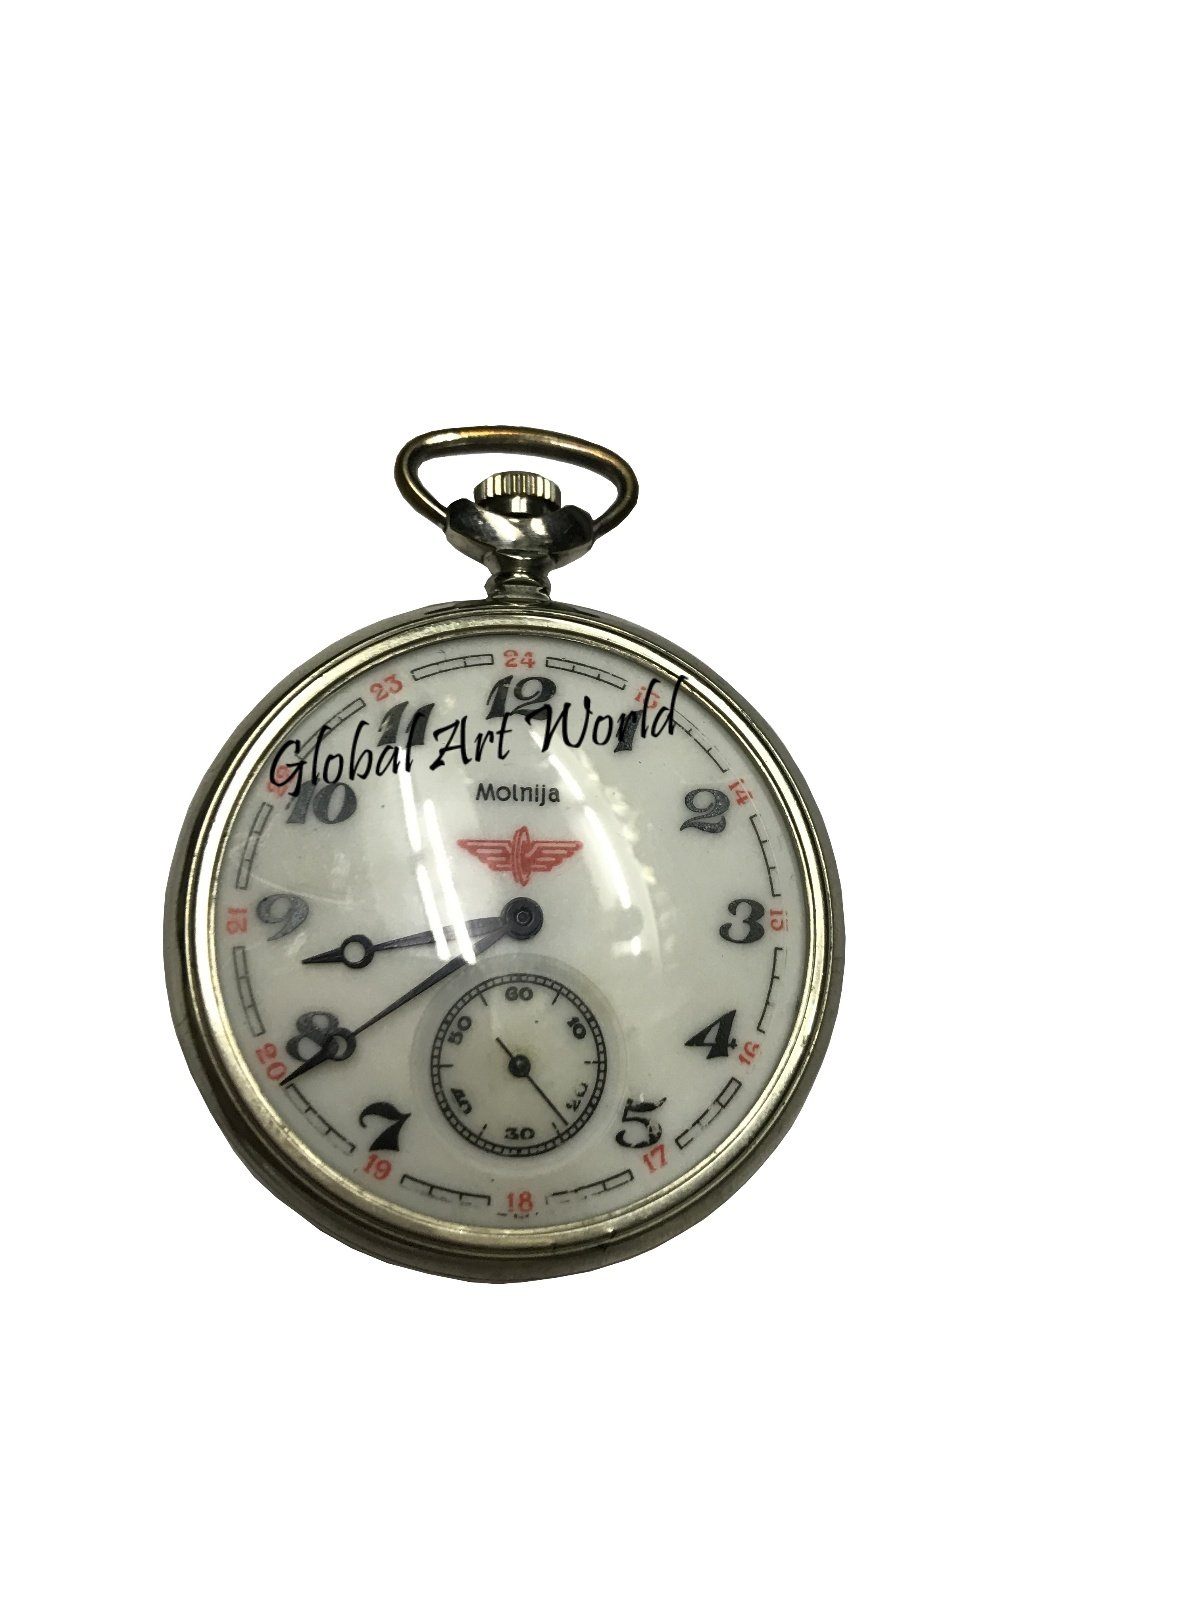 Global Art World Soviet Mechanical Antique Time Piece Vintage Collectible Pocket Watch Molnija Serkis Of Ussr 1989 With Manual Winding HB 0234